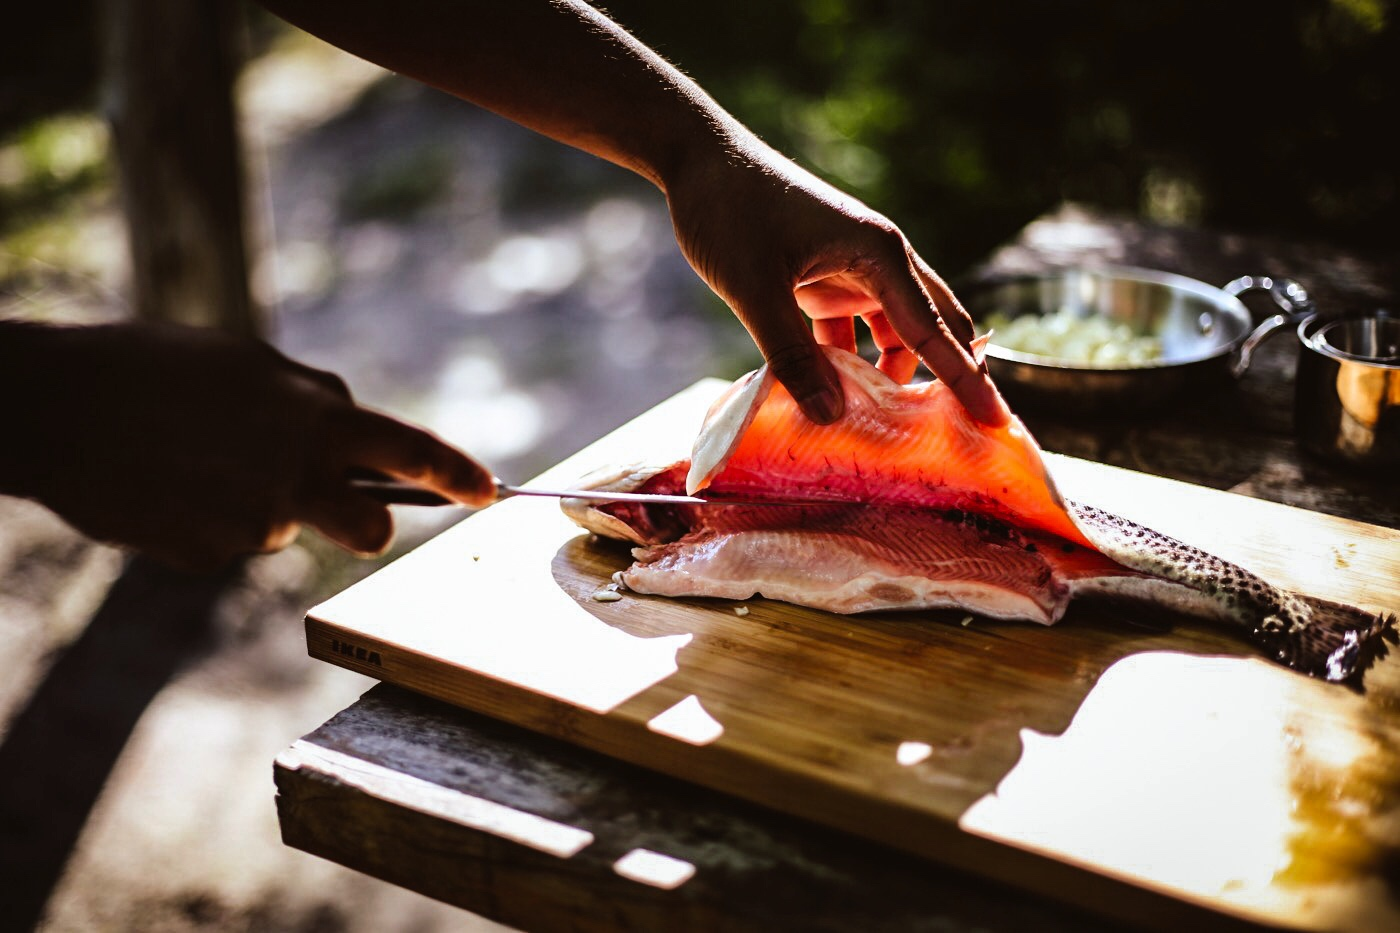 Cutting open the Trout to stuff with Lemon, Sage and Butter (Photo captured by  @ajfernando )